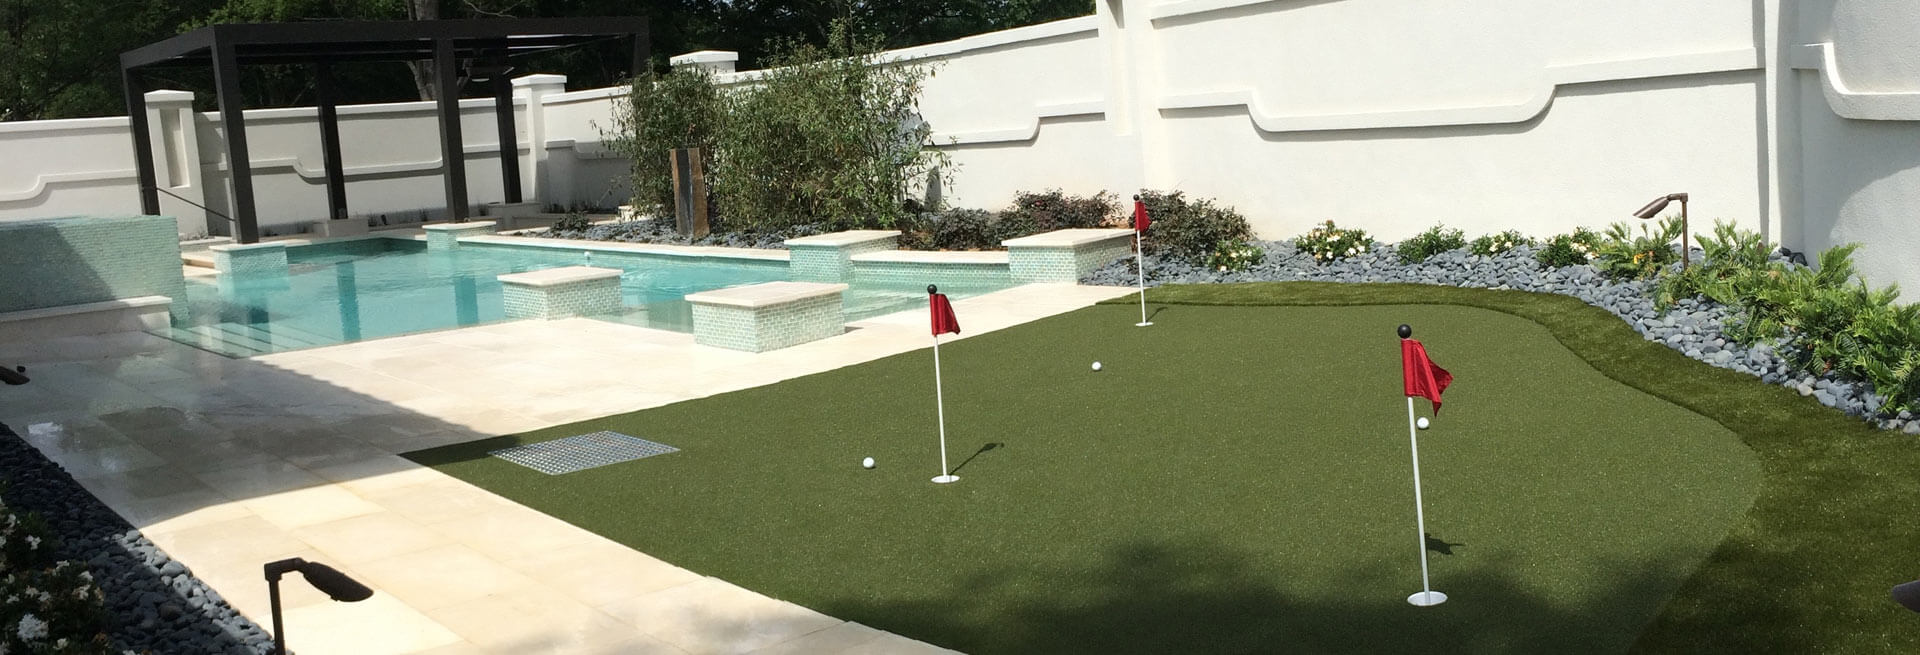 Charlotte nc artificial grass amp putting greens synlawn